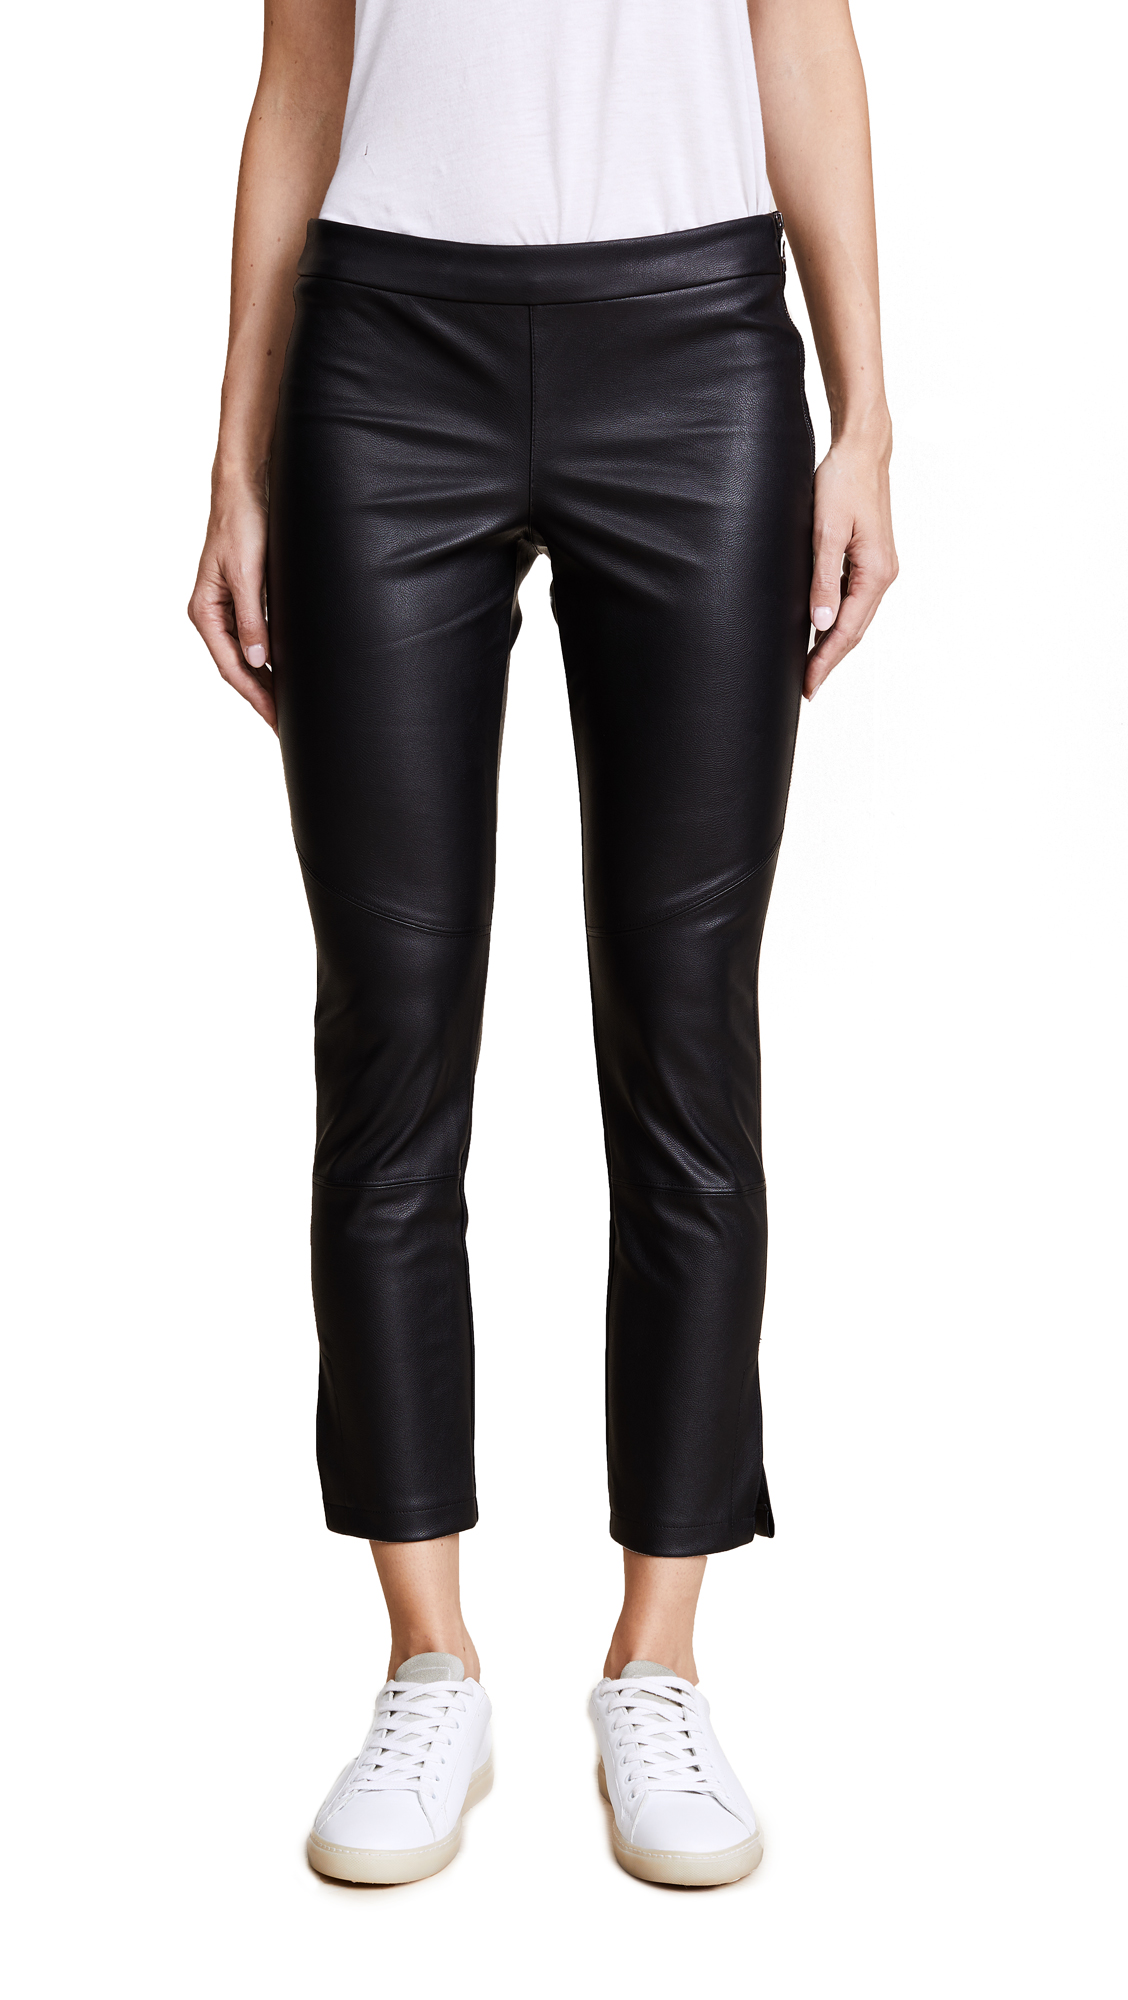 David Lerner Blake Crop Legging - Classic Black